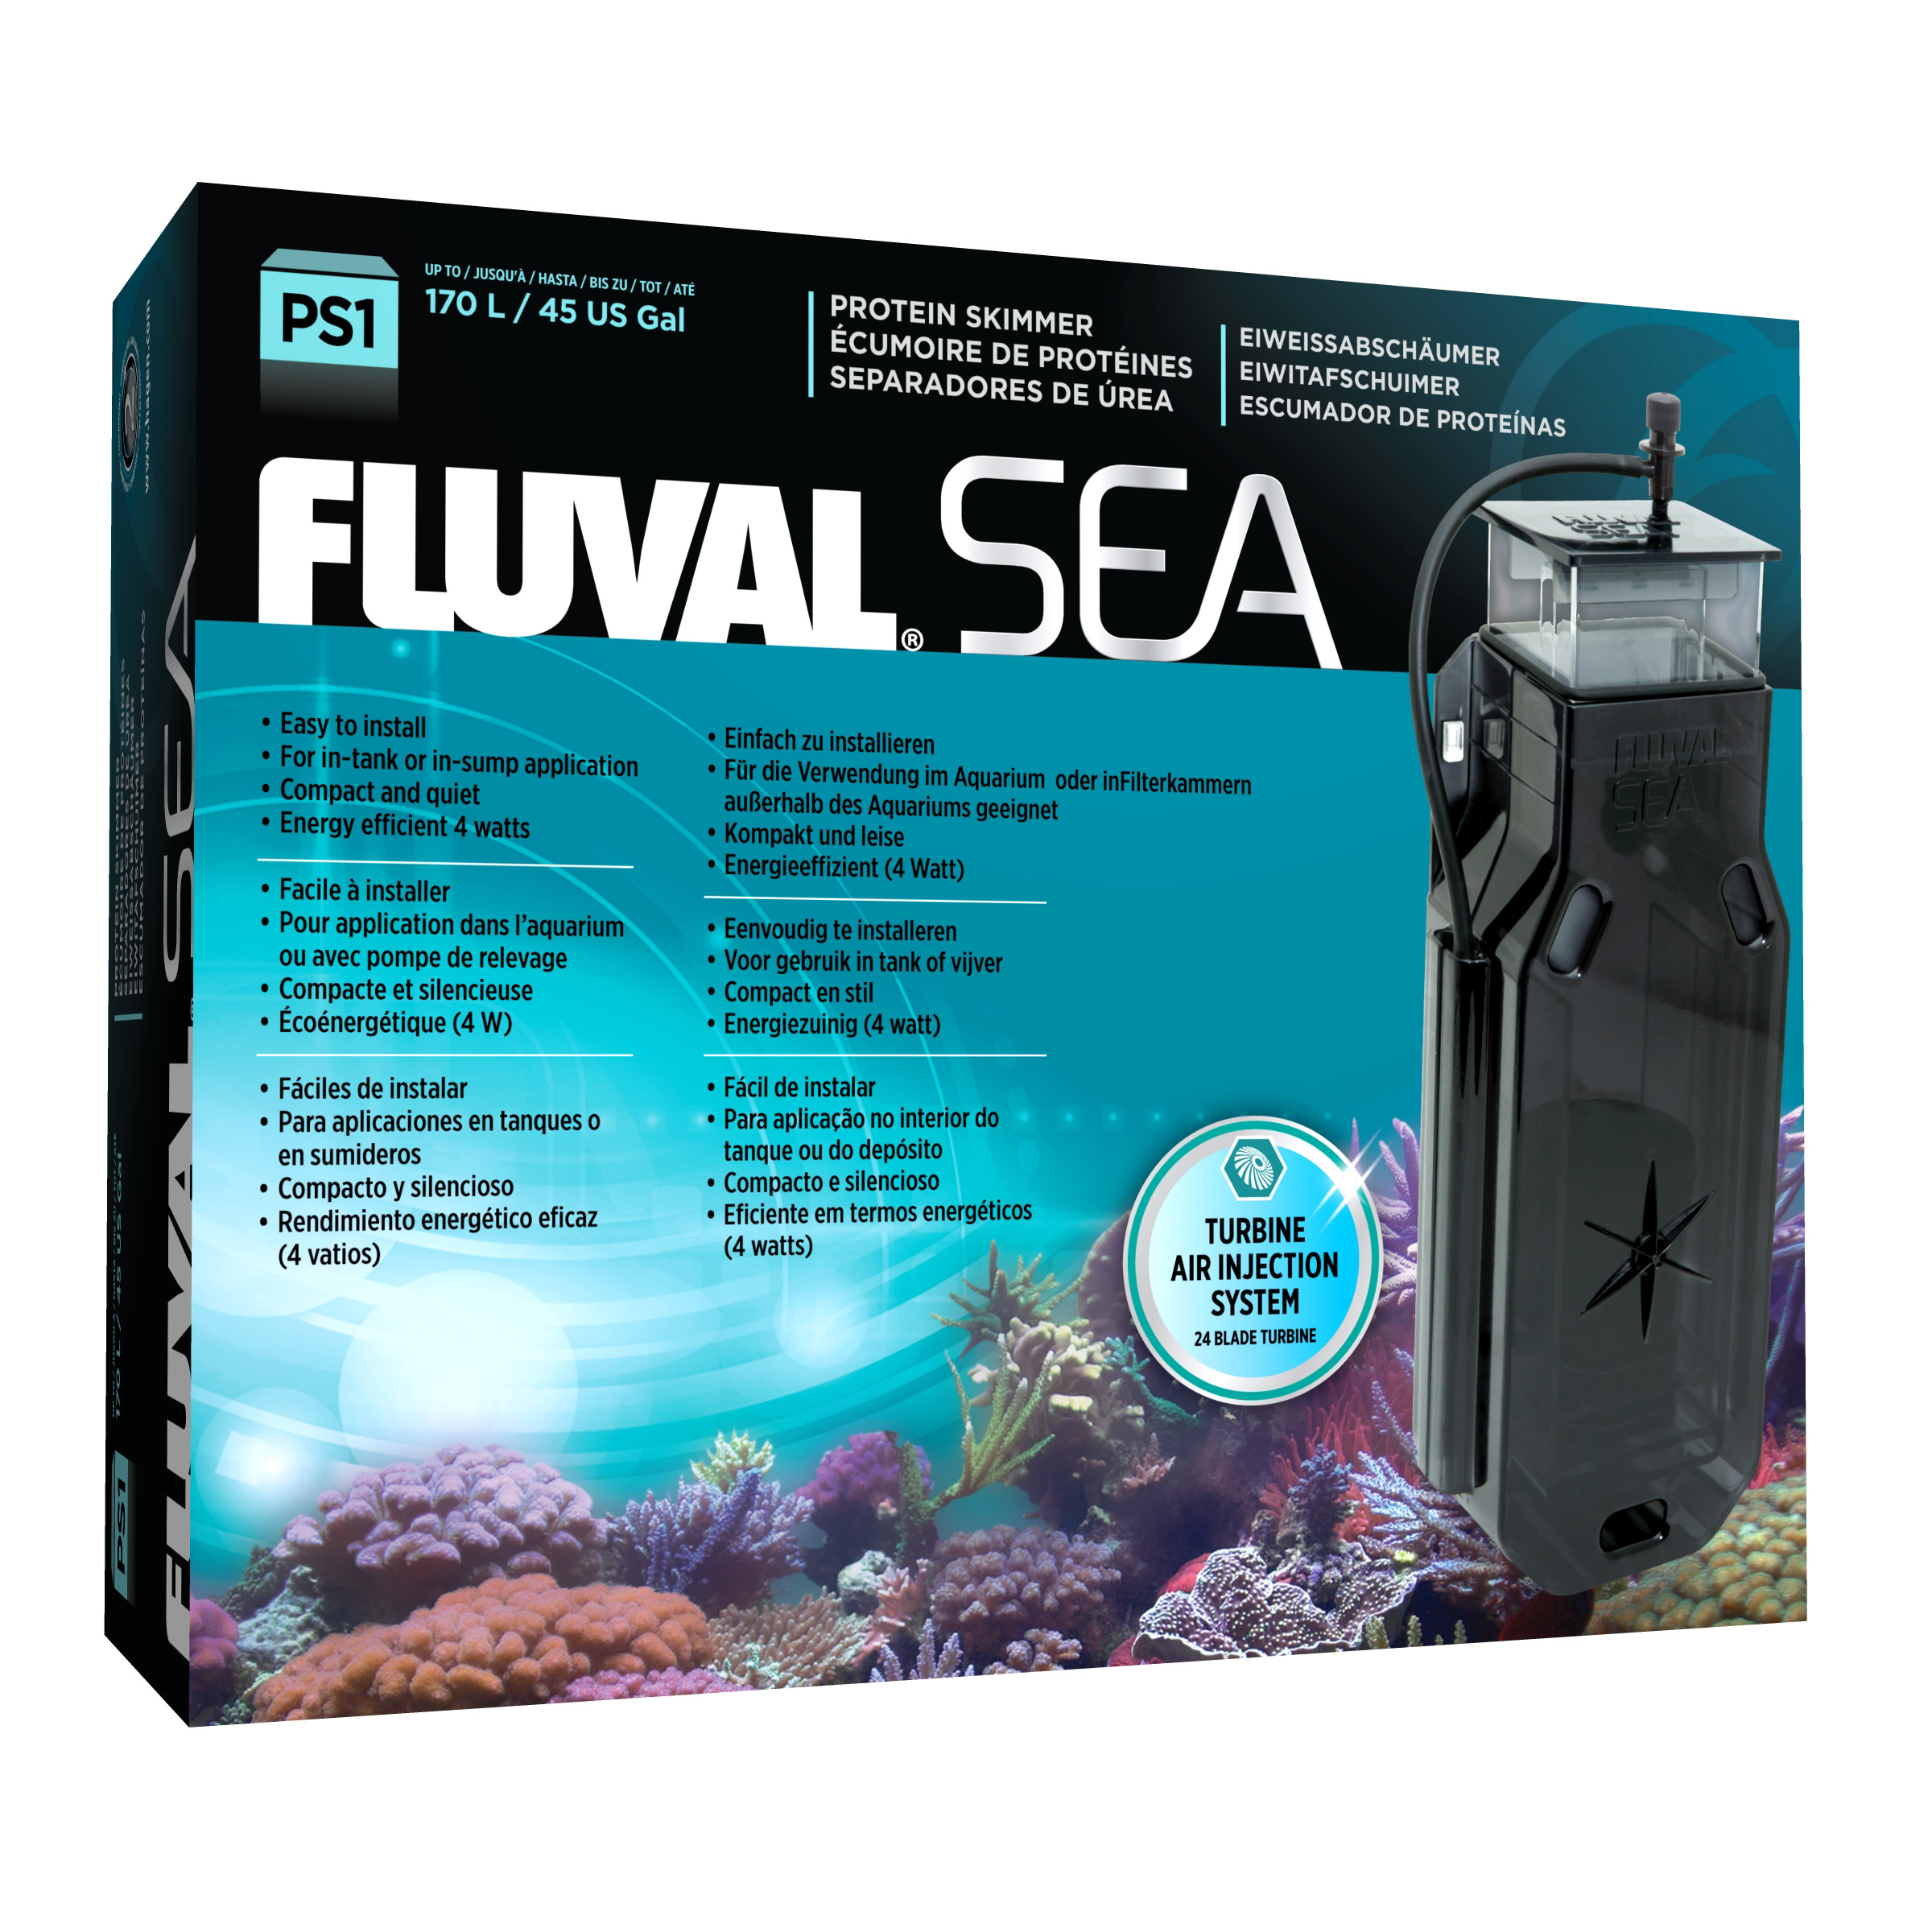 Fluval Sea PS 1 Protein Skimmer